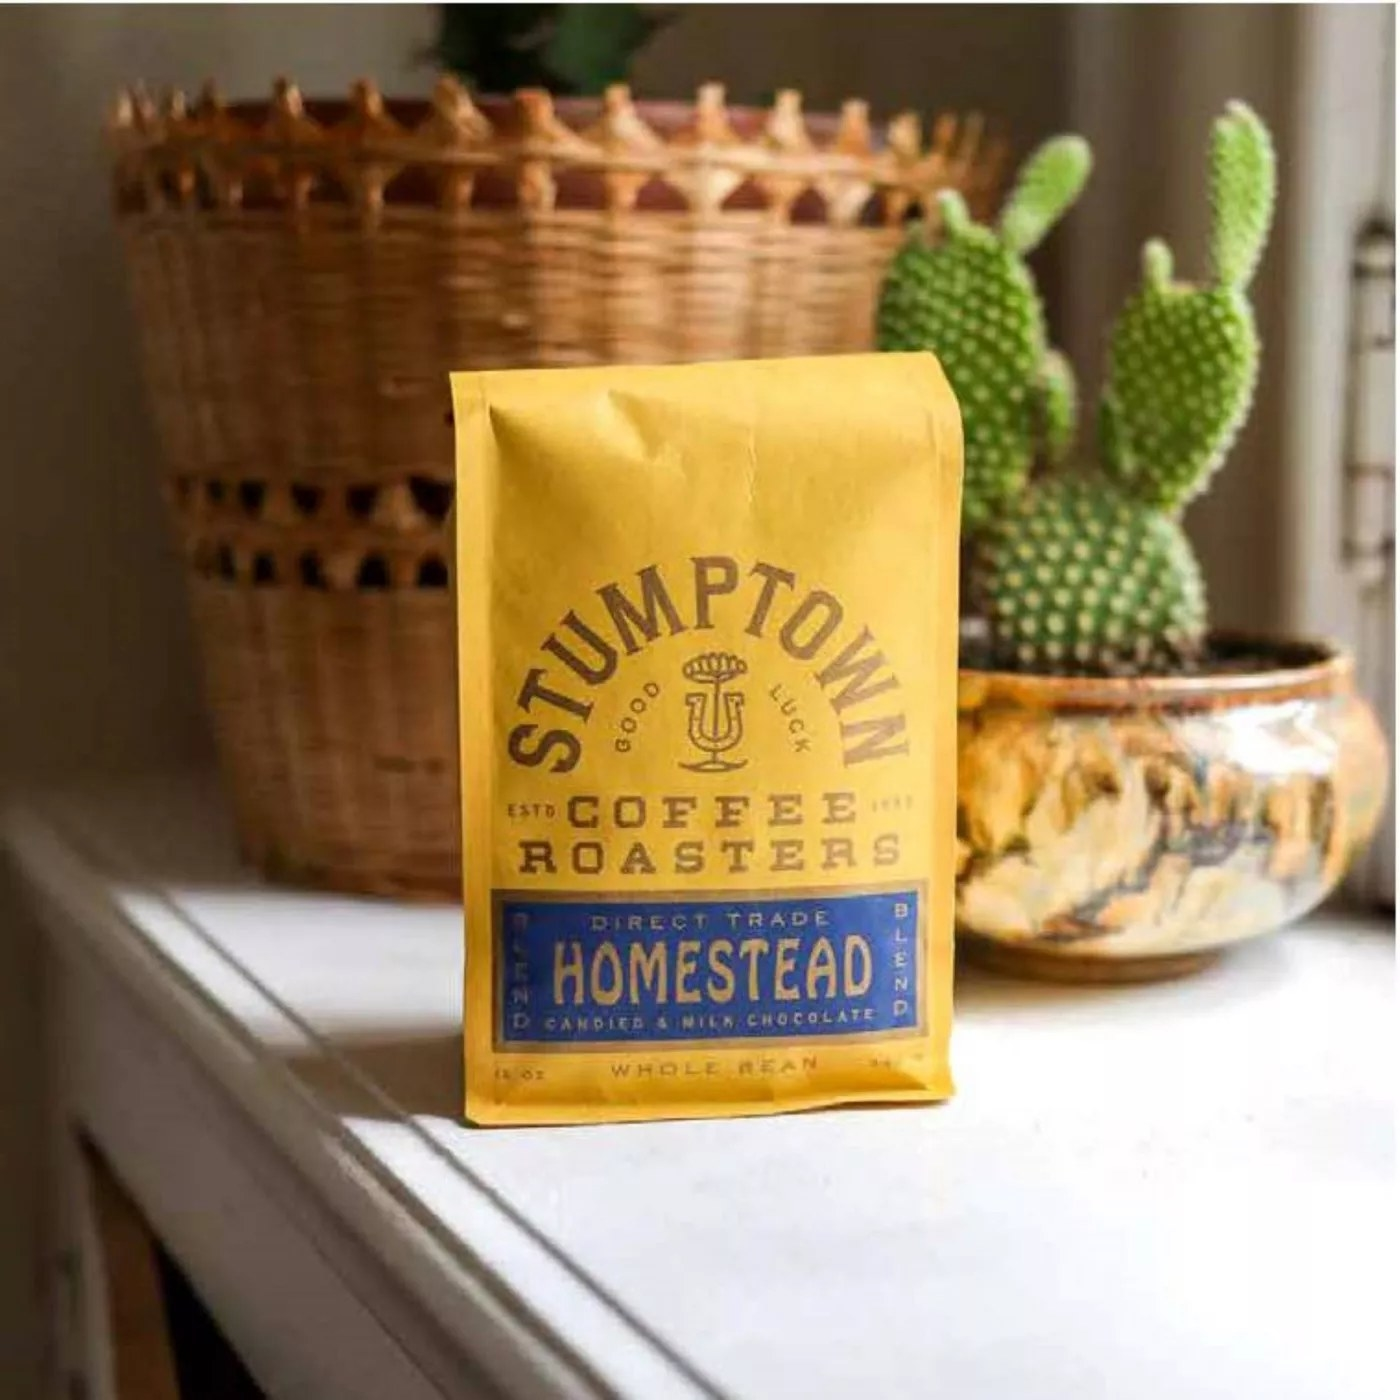 The yellow bag of Stumptown coffee on a counter